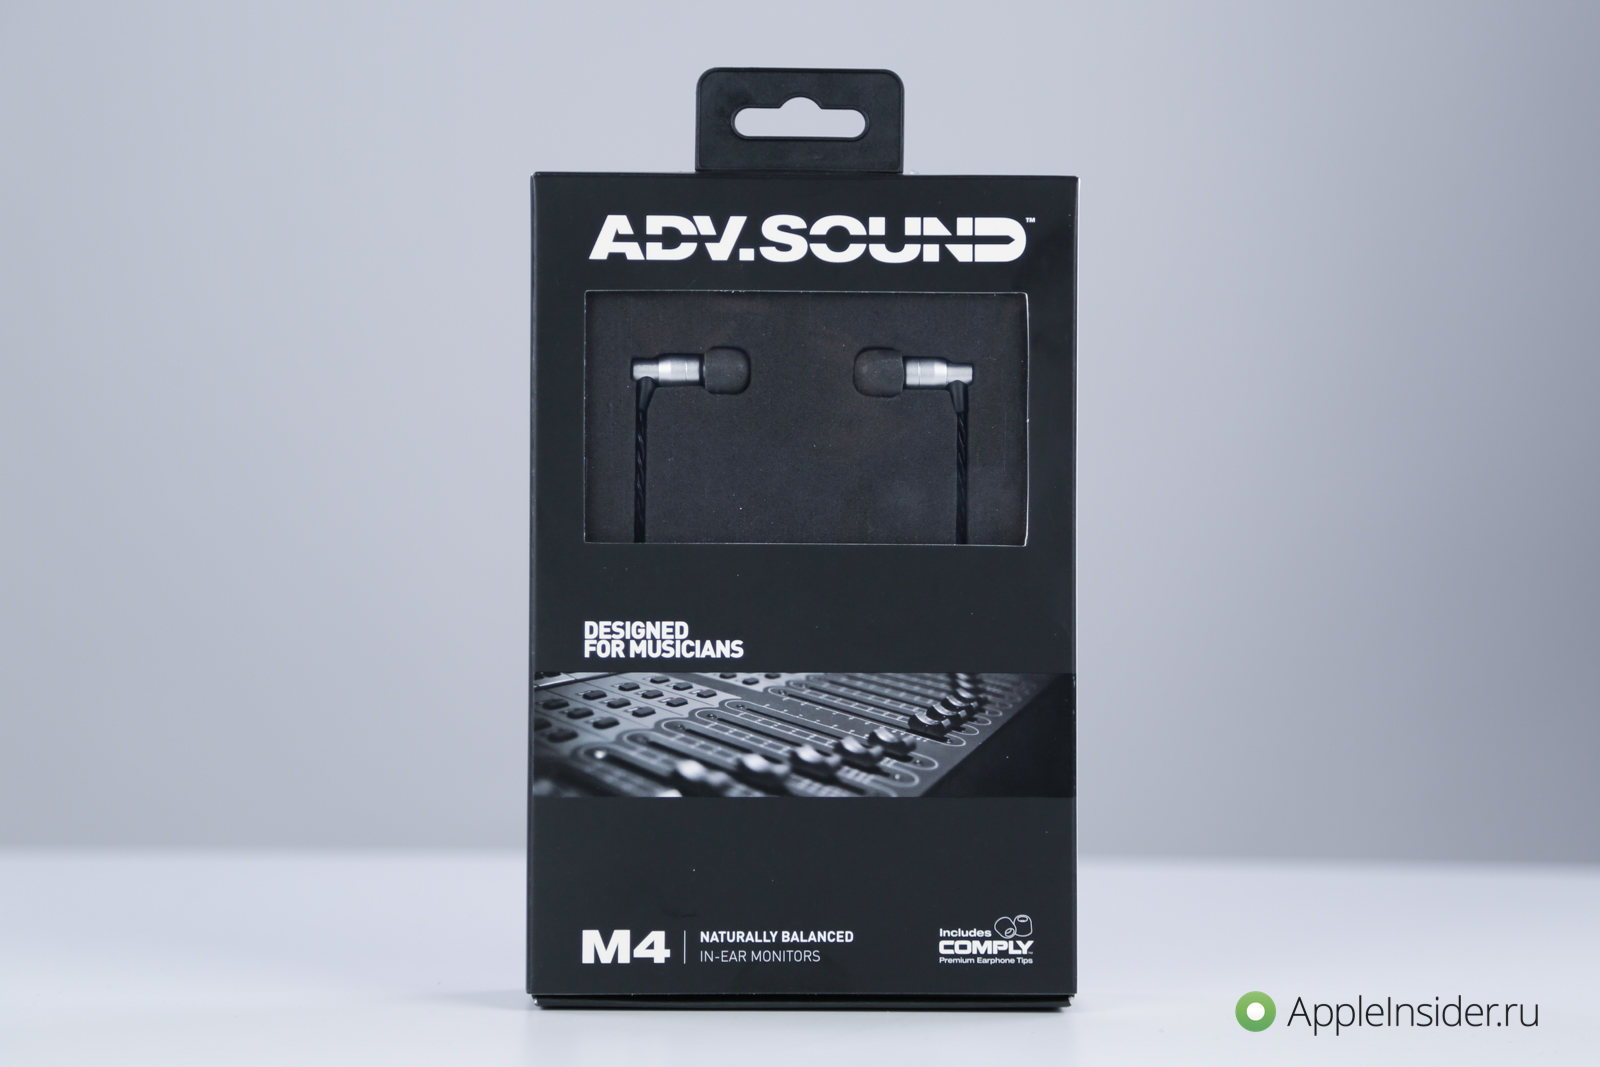 M4 ADV headphones.Sound: not just for musicians